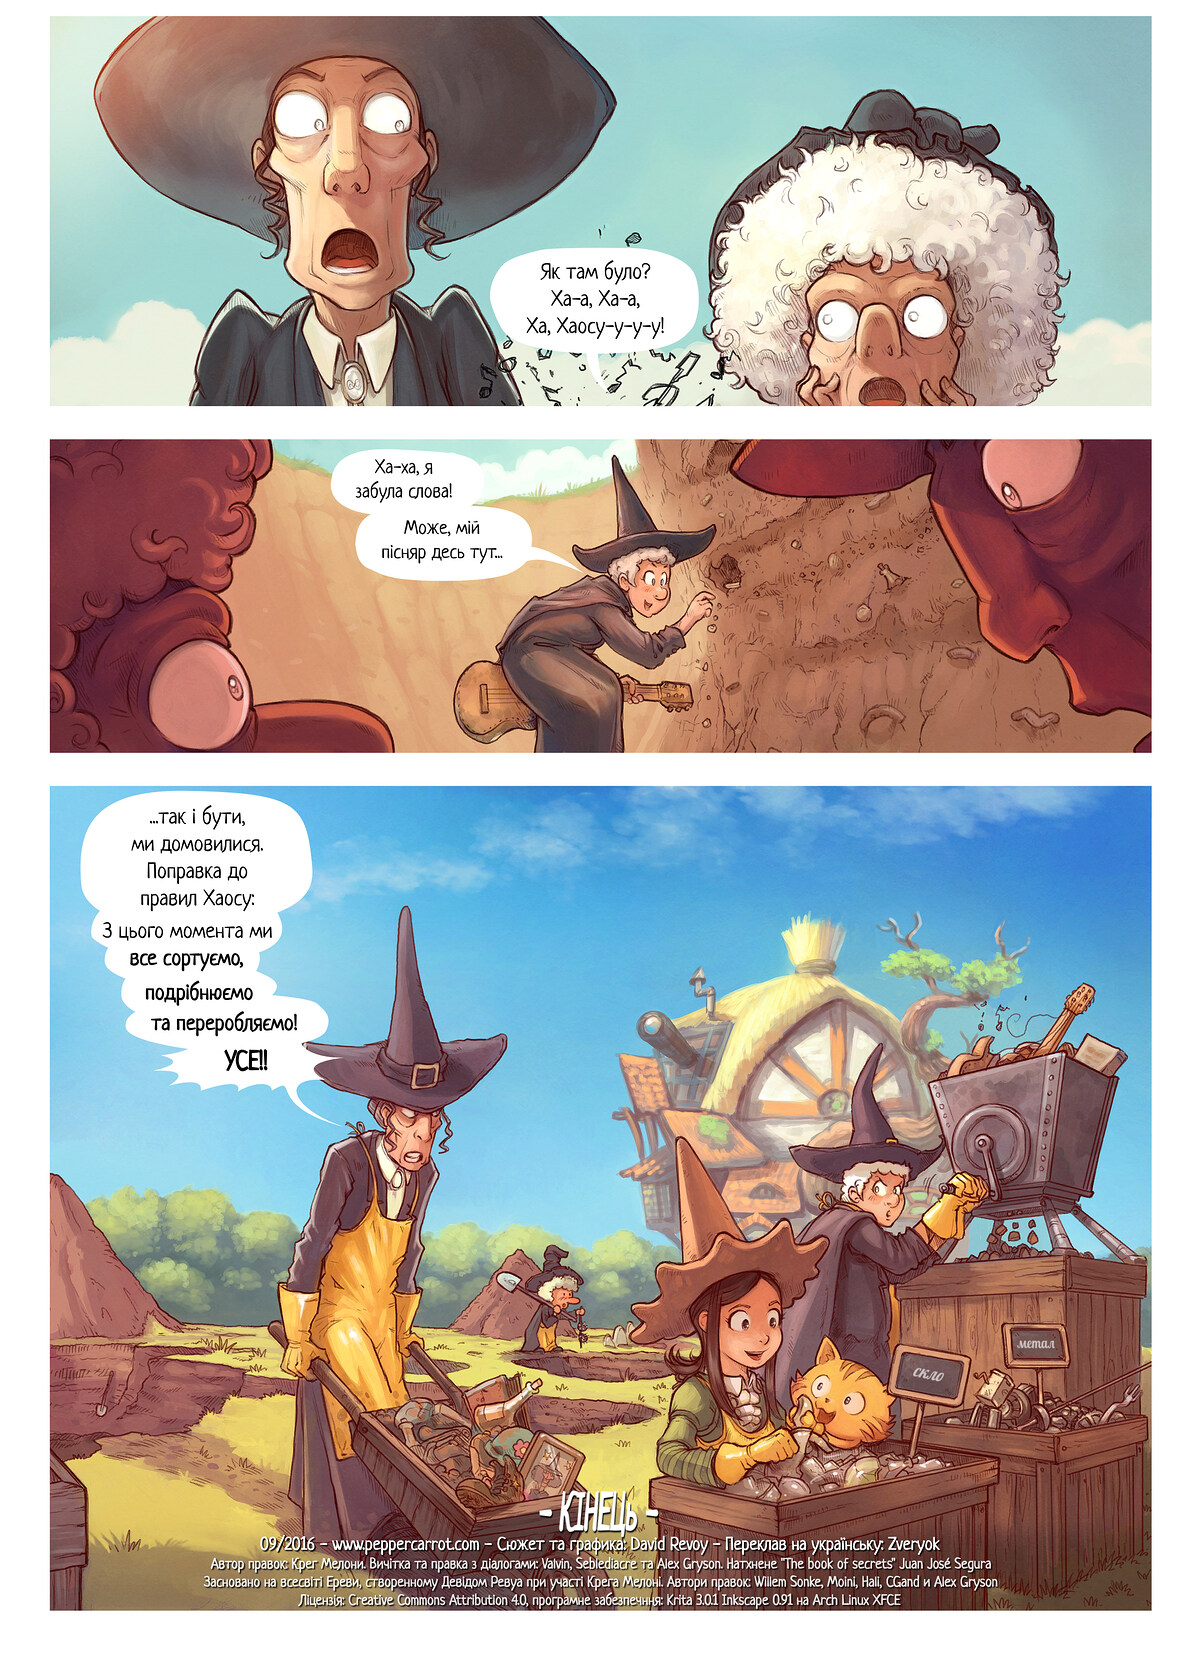 A webcomic page of Pepper&Carrot, епізод 19 [uk], стор. 7